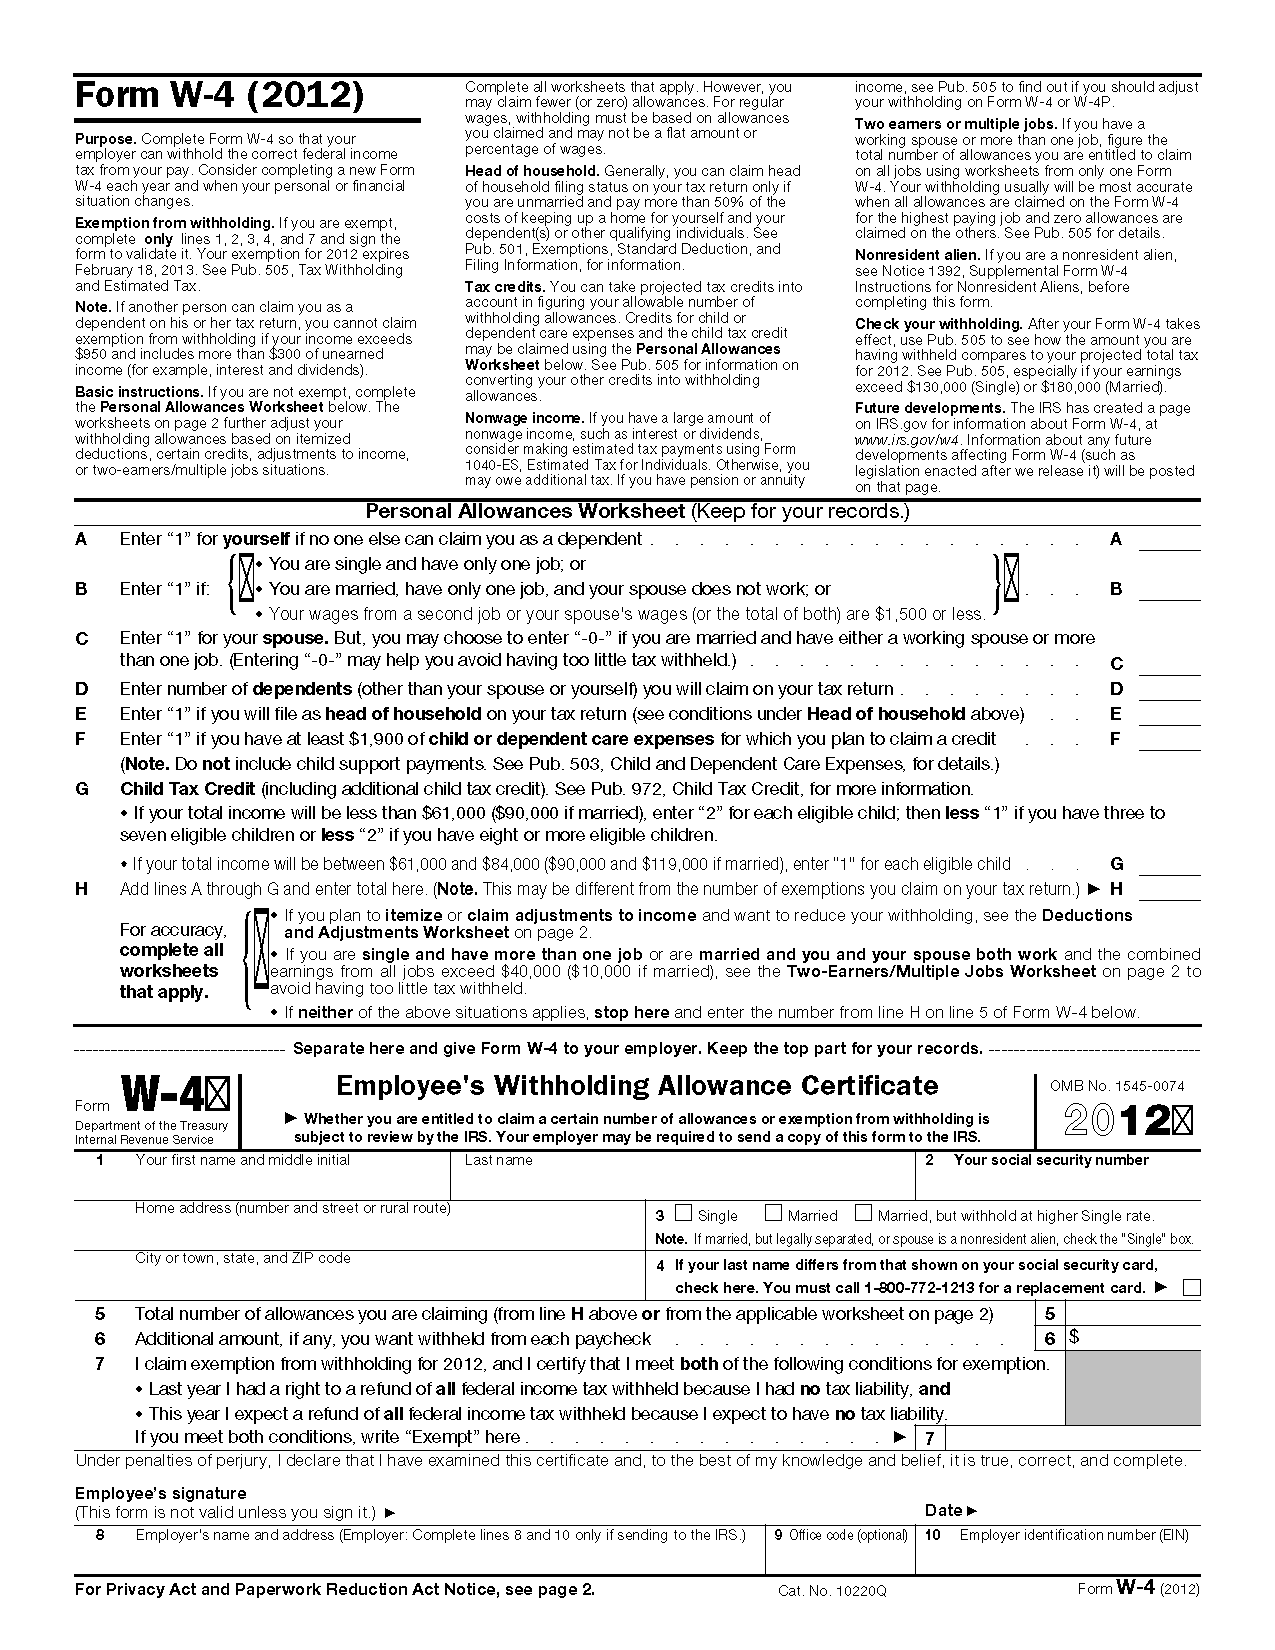 Form W4 Employees Withholding Allowance Certificate – Personal Allowances Worksheet Help